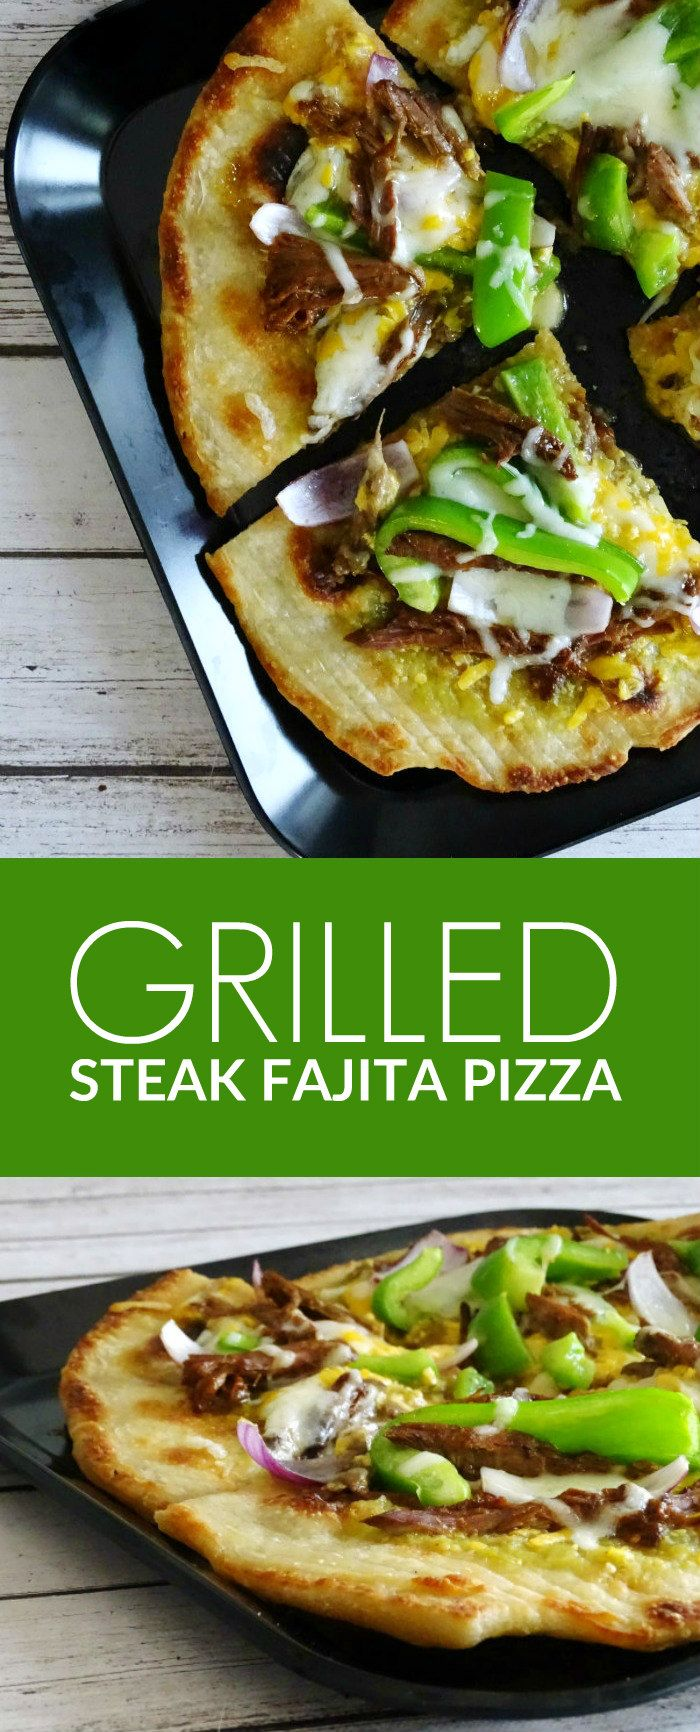 Put this Grilled Steak Fajita Pizza on your dinner menu today! Try out a recipe that will impress your family. This will make a meal everyone will enjoy.